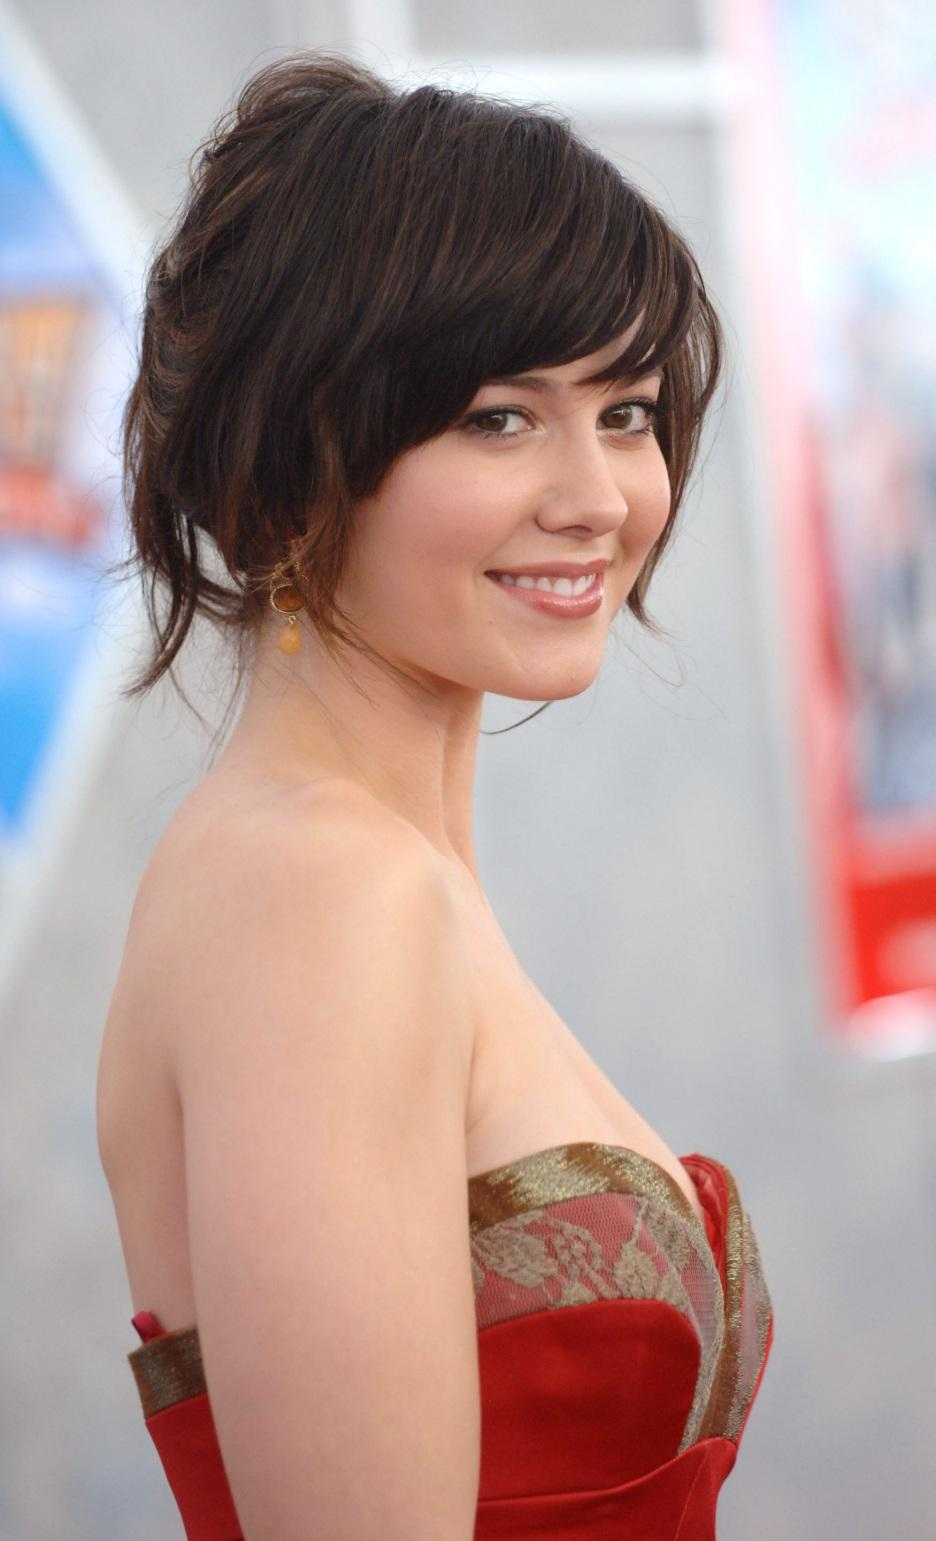 mary elizabeth winstead - photo #31